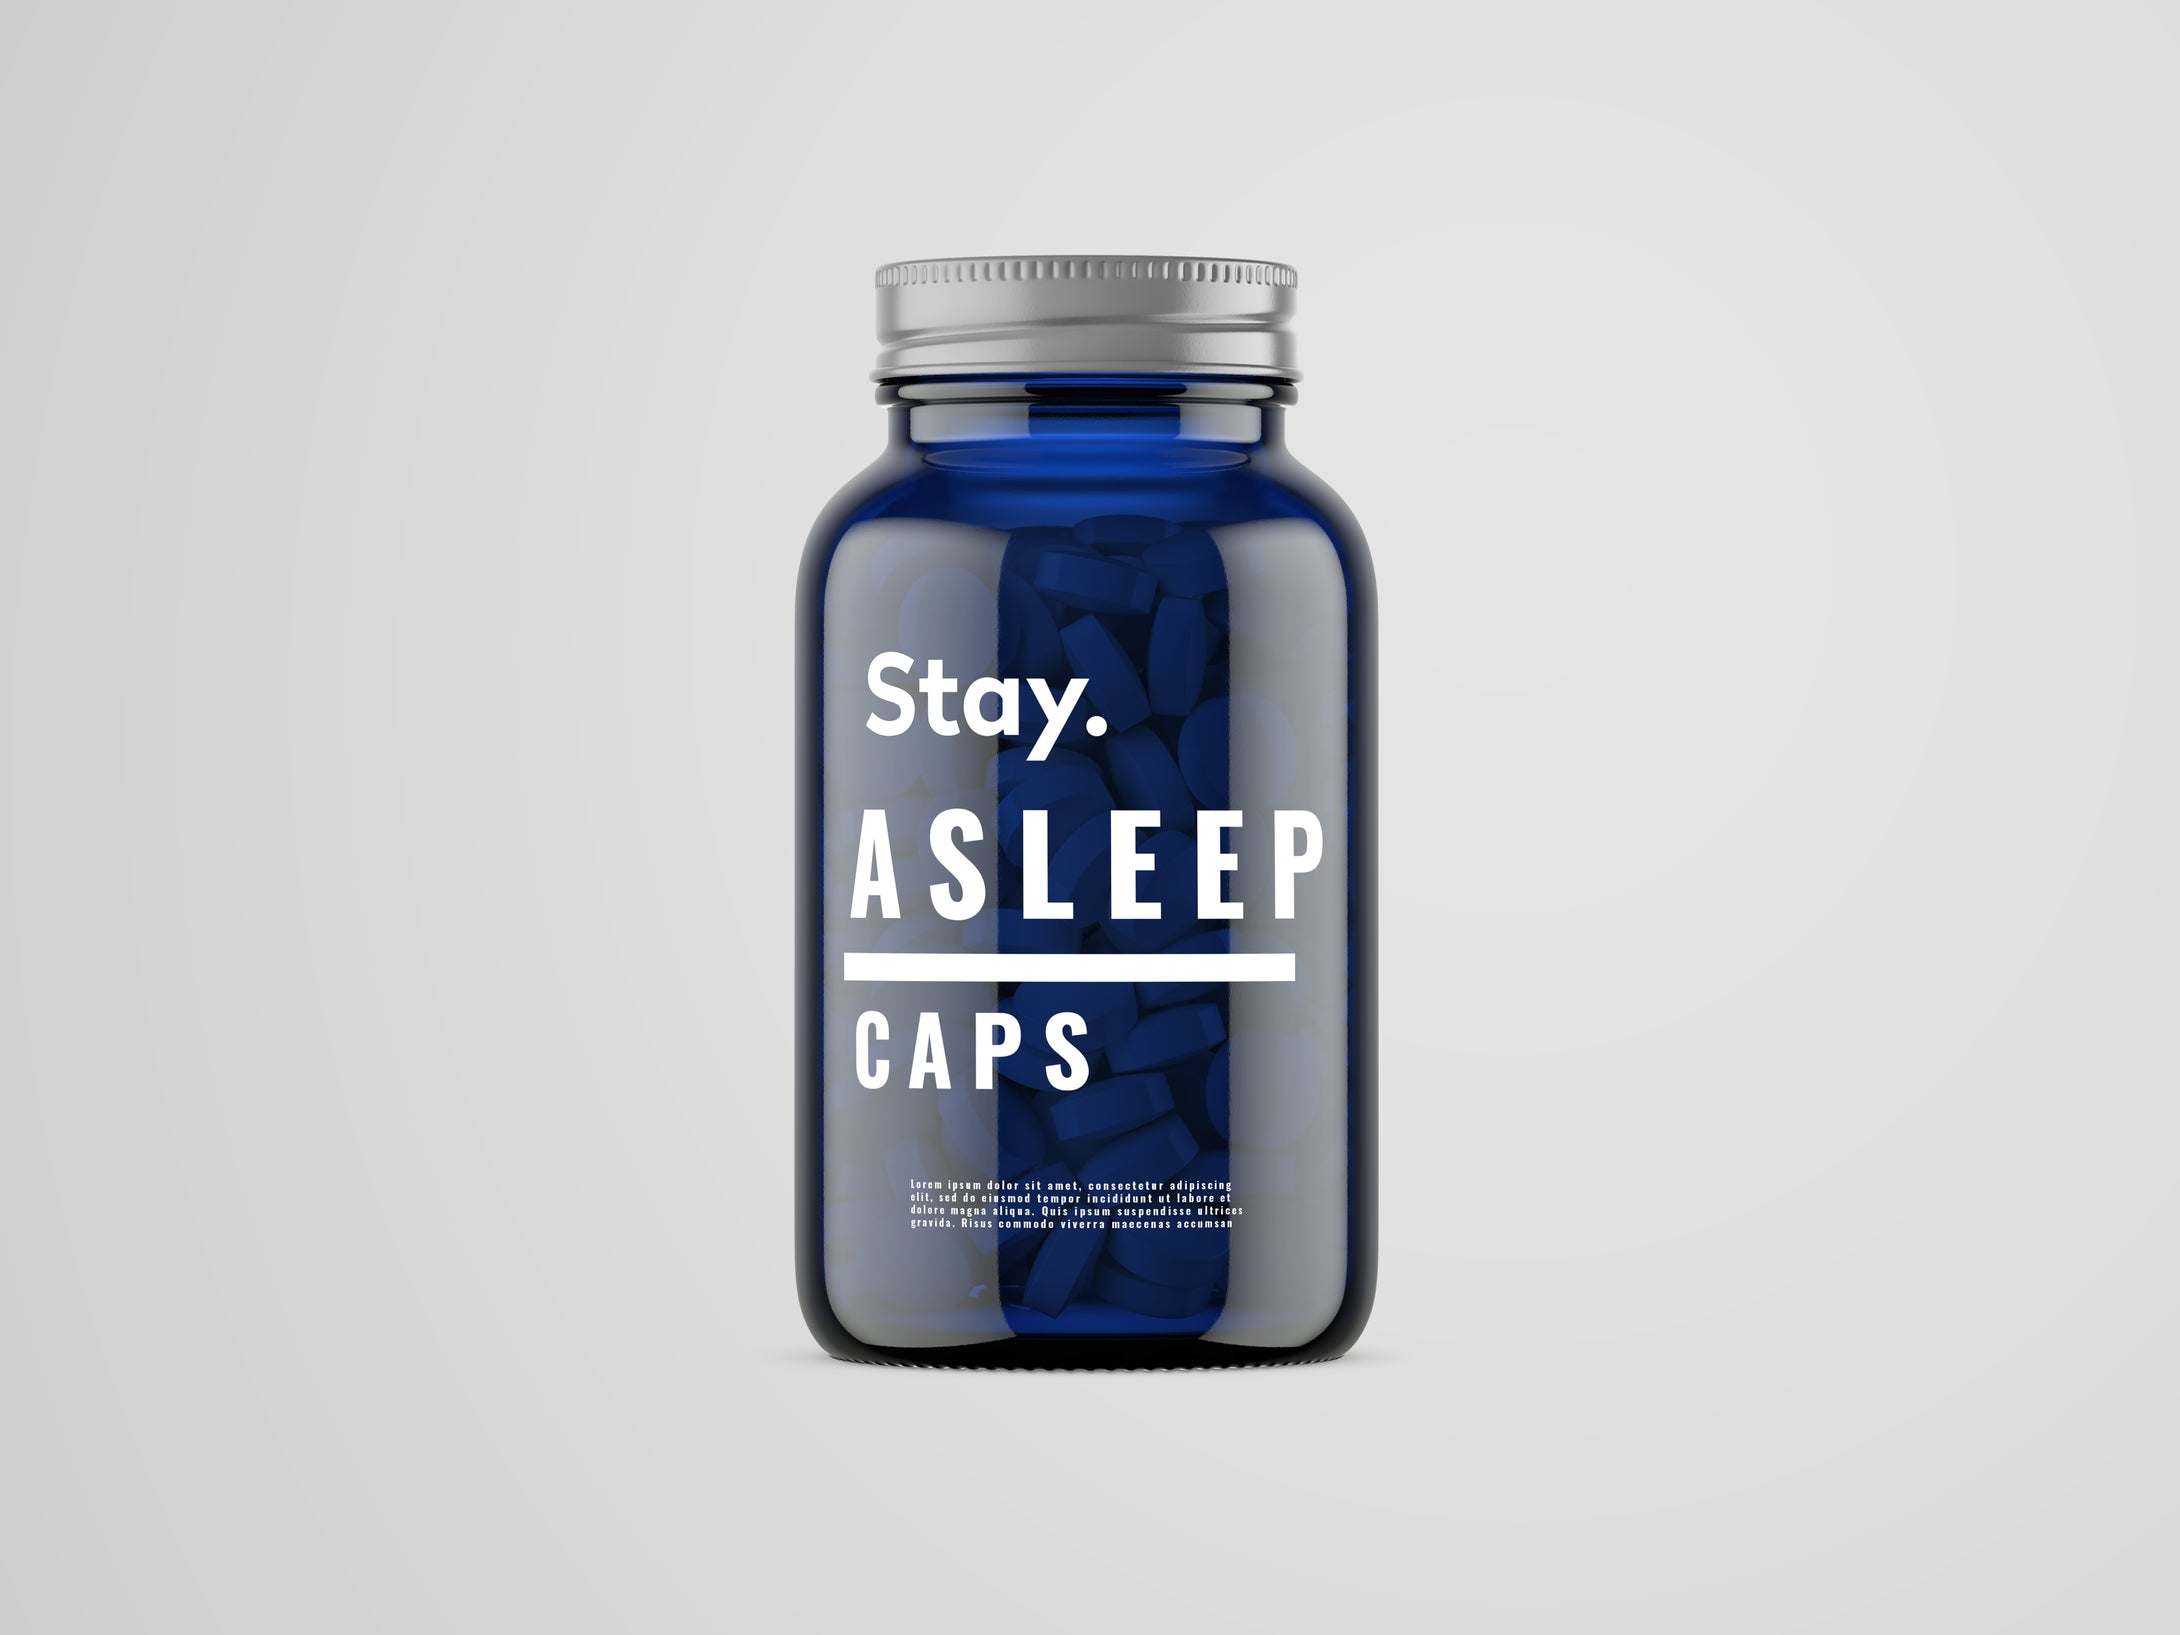 stay asleep caps